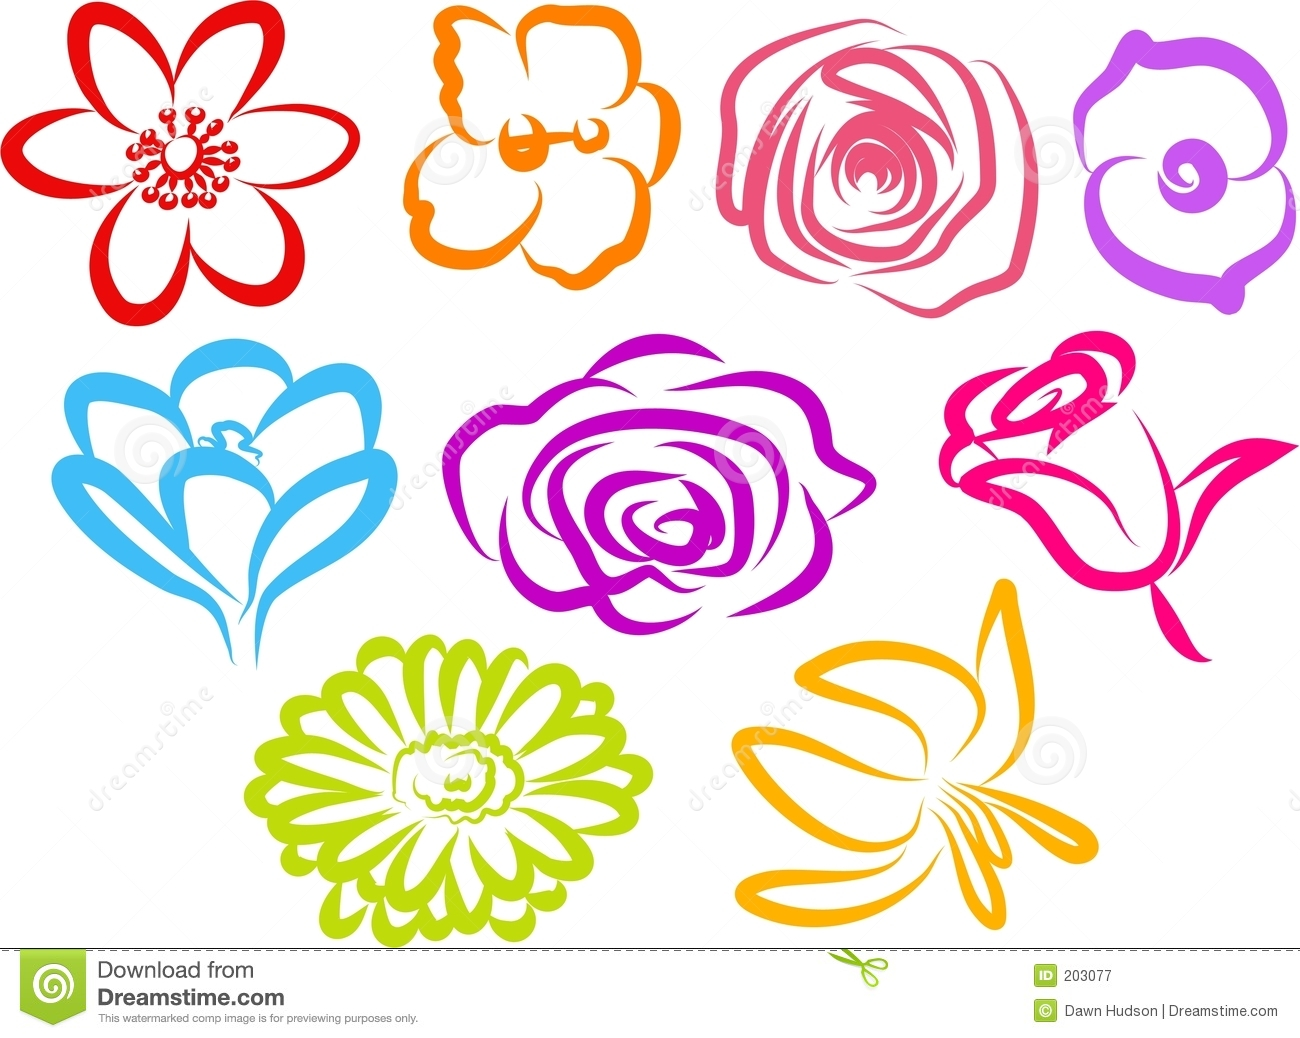 Flower Icons Royalty Free Stock Photography - Image: 203077